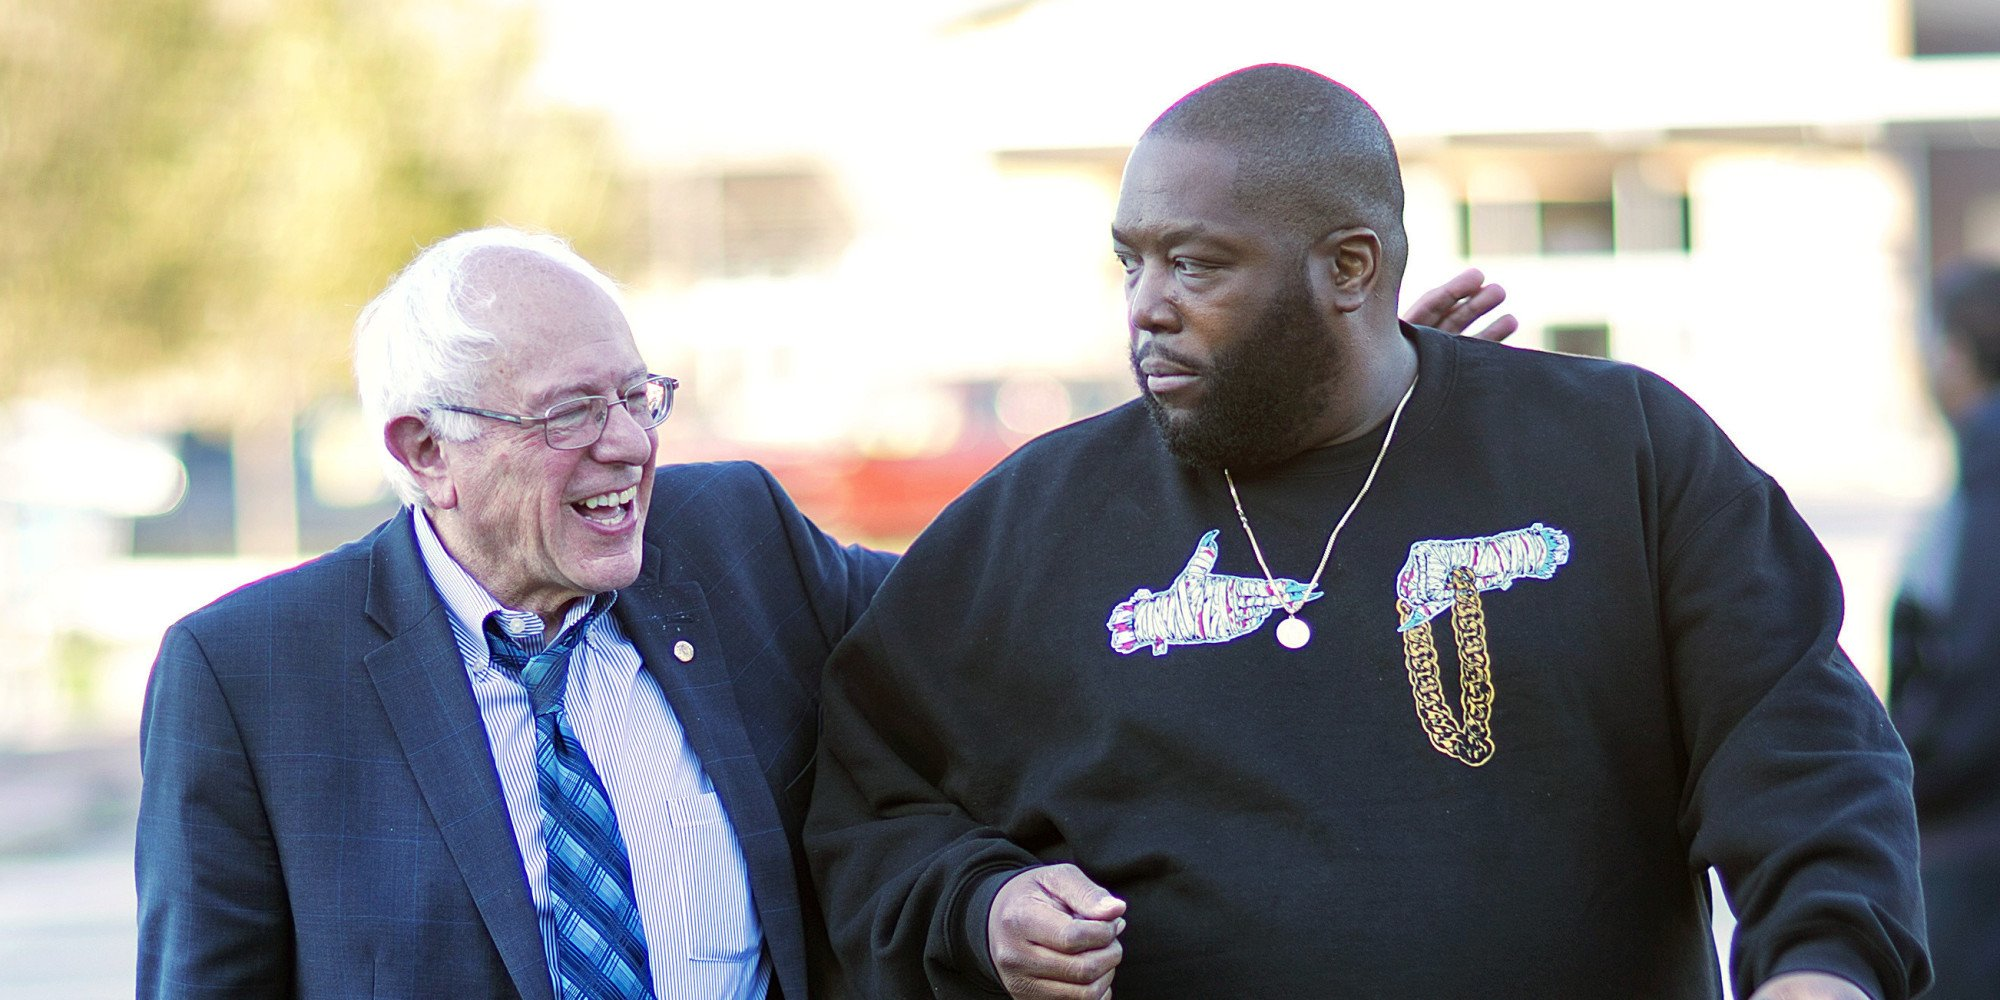 Rapper Killer Mike to Progressive Gun Grabbers Youre not Woke and Youre Going to Progress Us into Slavery VIDEO